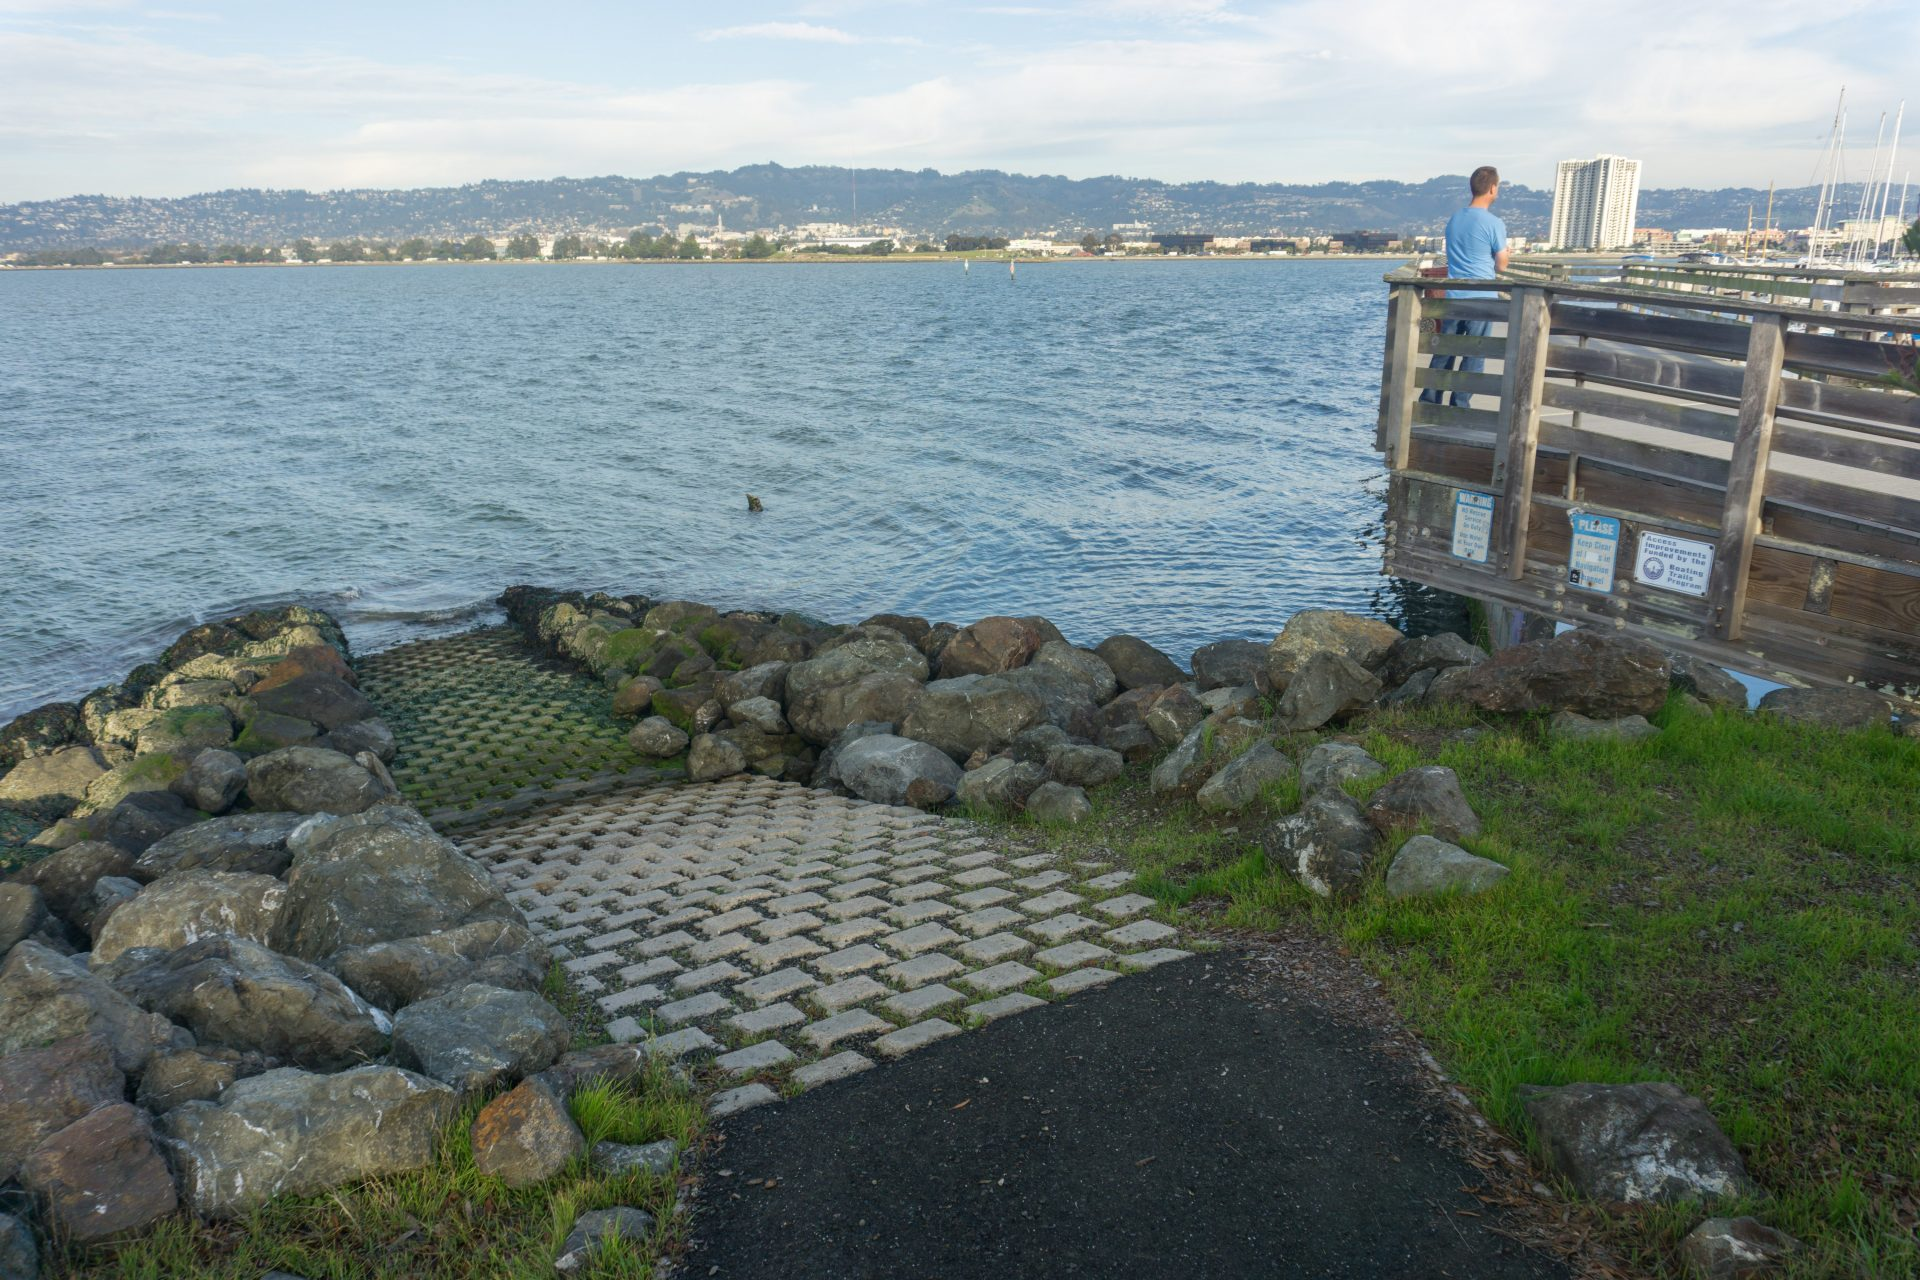 riprap on either side of cobblestone ramp into water, with wooden observation deck on right